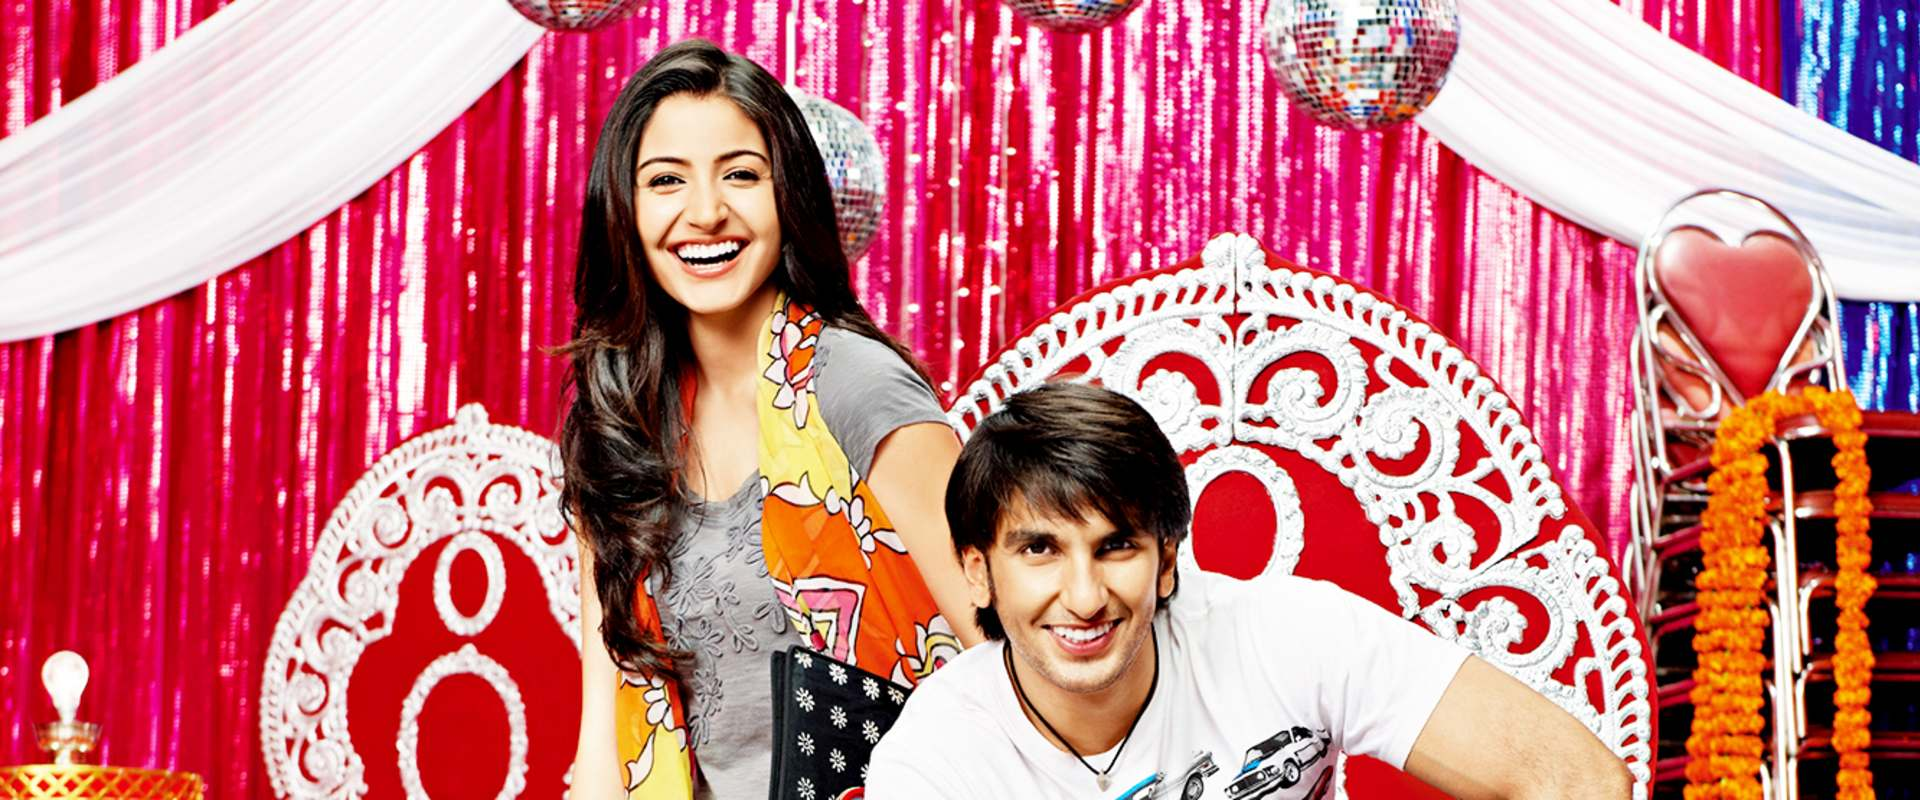 Band Baaja Baaraat background 2